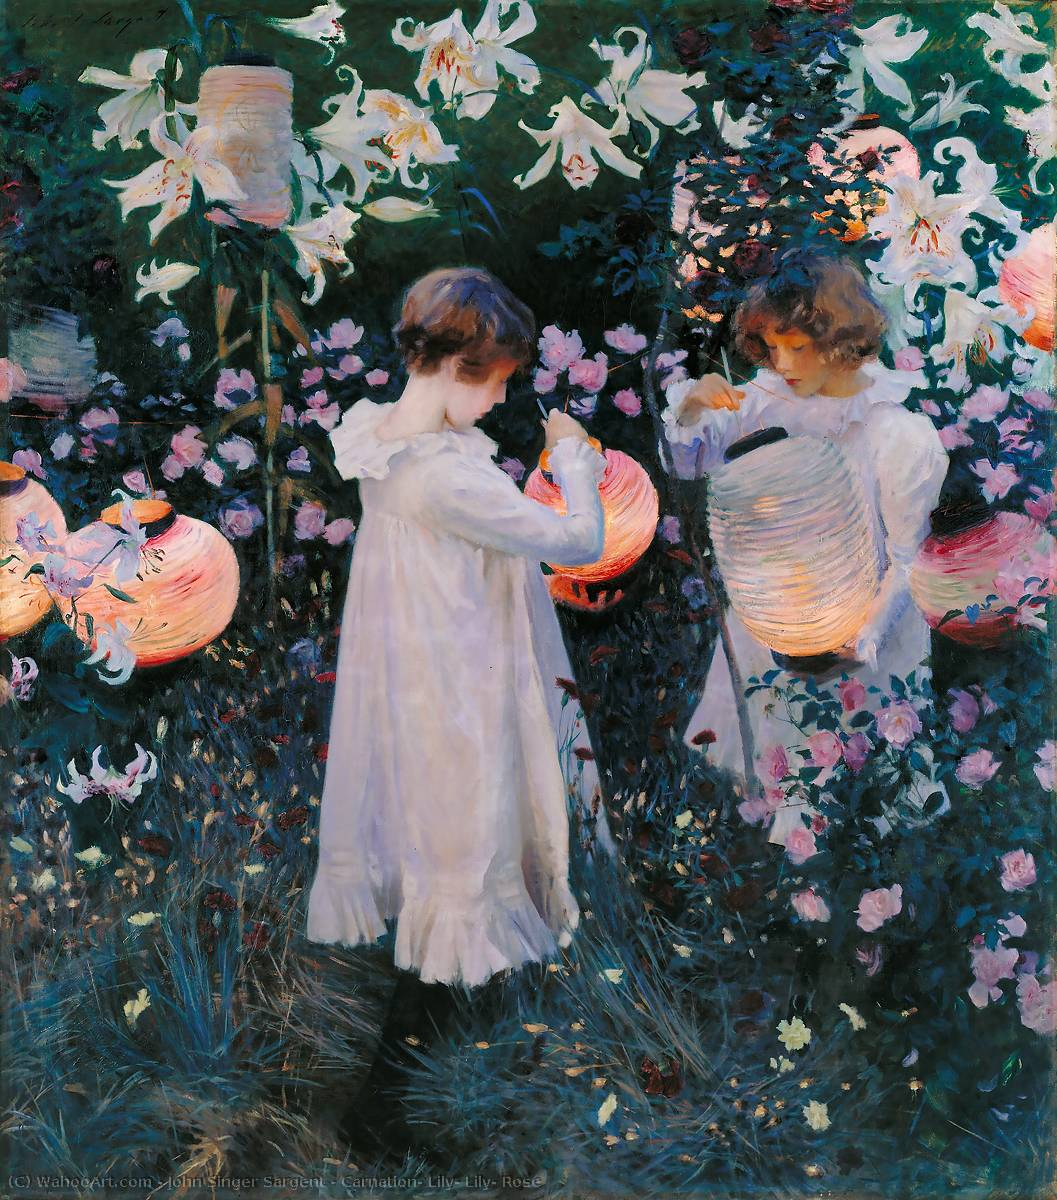 Carnation, Lily, Lily, Rose, Oil On Canvas by John Singer Sargent (1856-1925, Italy)